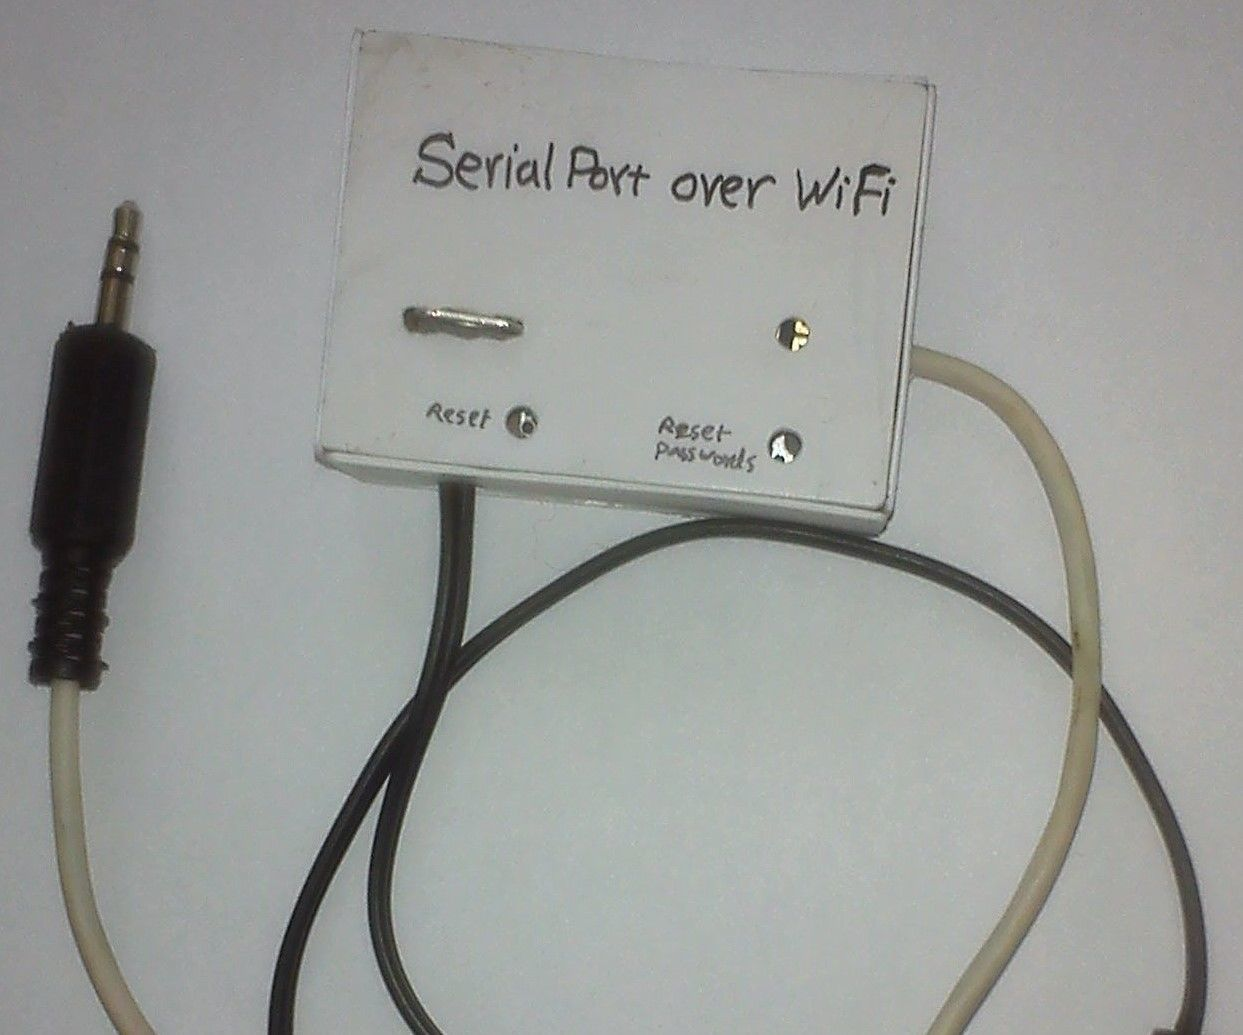 Serial Port Over WiFi | Serial port and Electronics projects